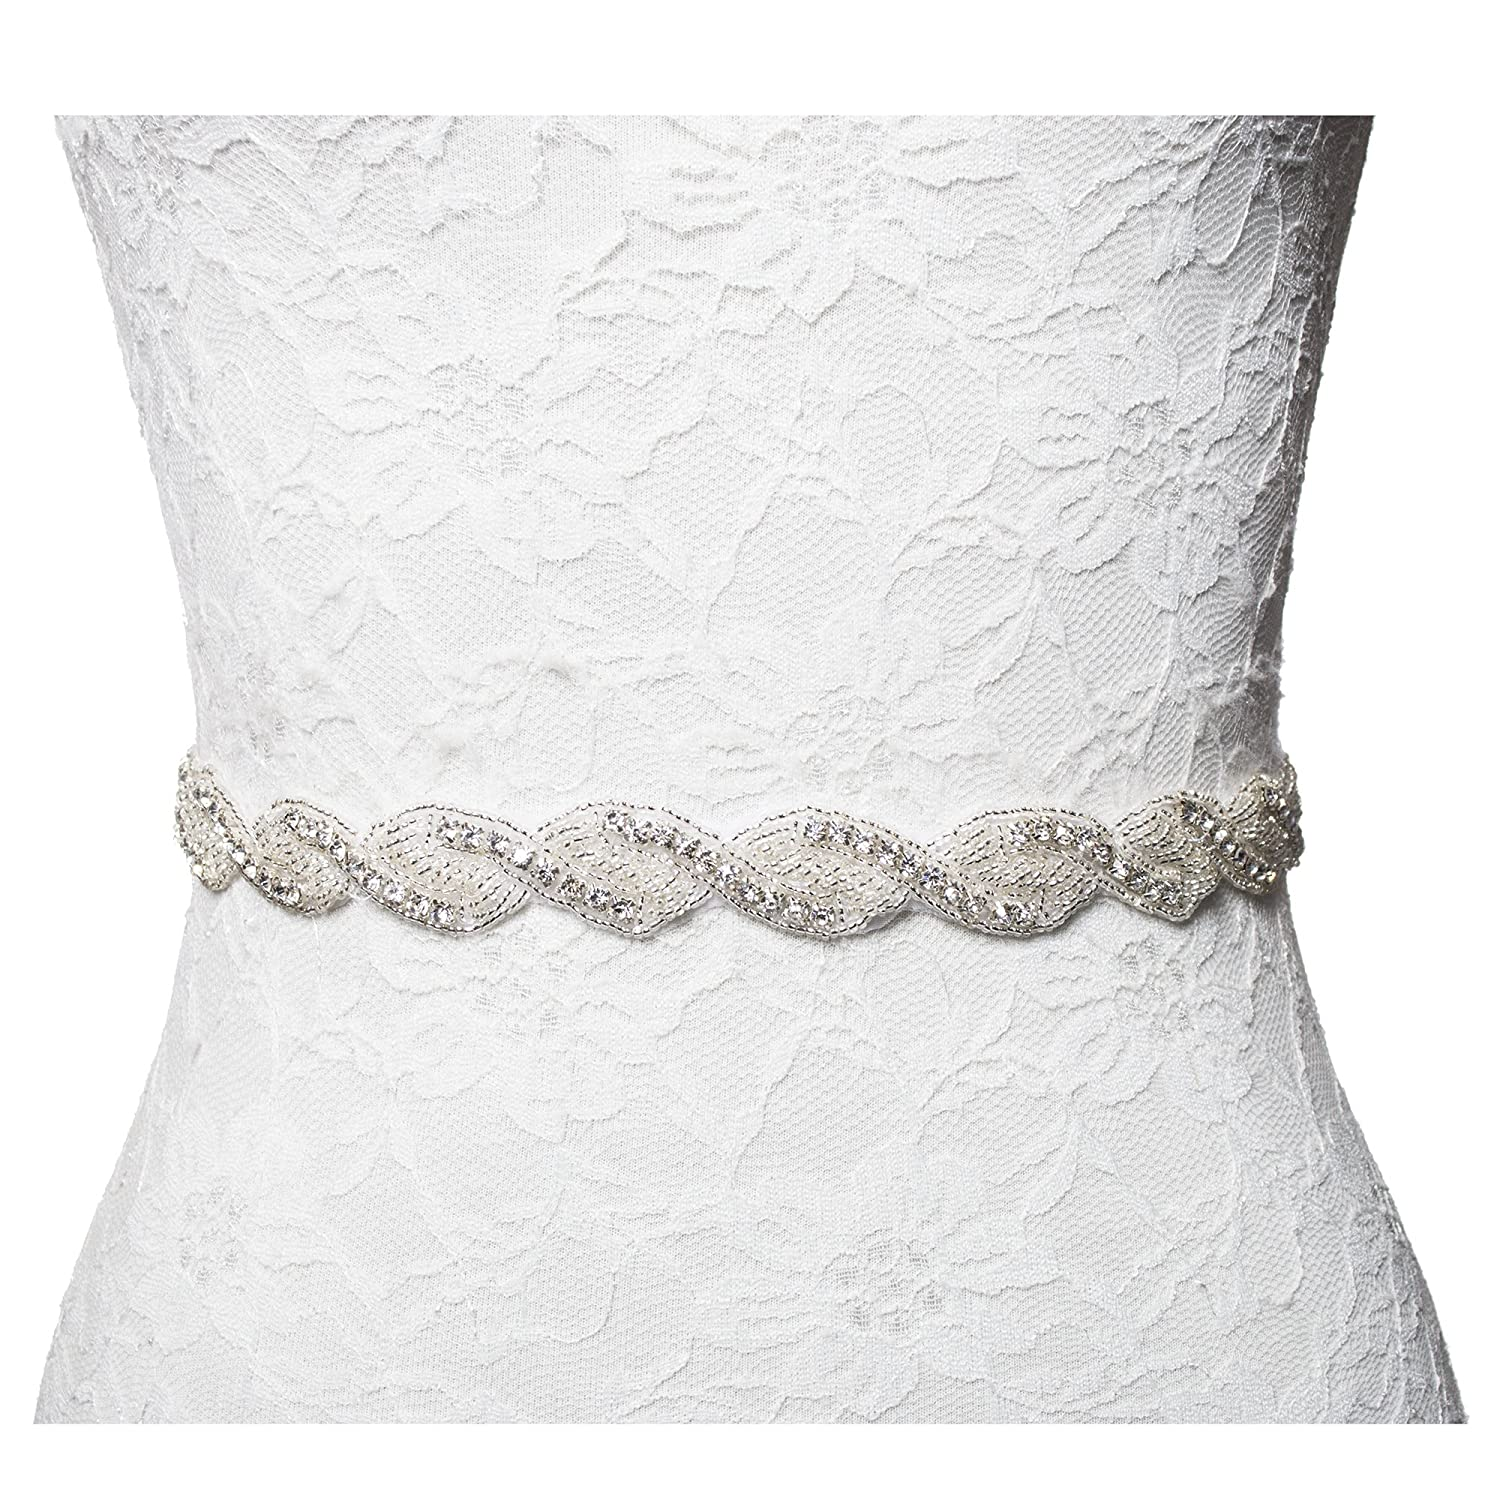 Thin Wedding Bridesmaid Dress Rhinestone Bridal Sash Belt with Crystal & Beads